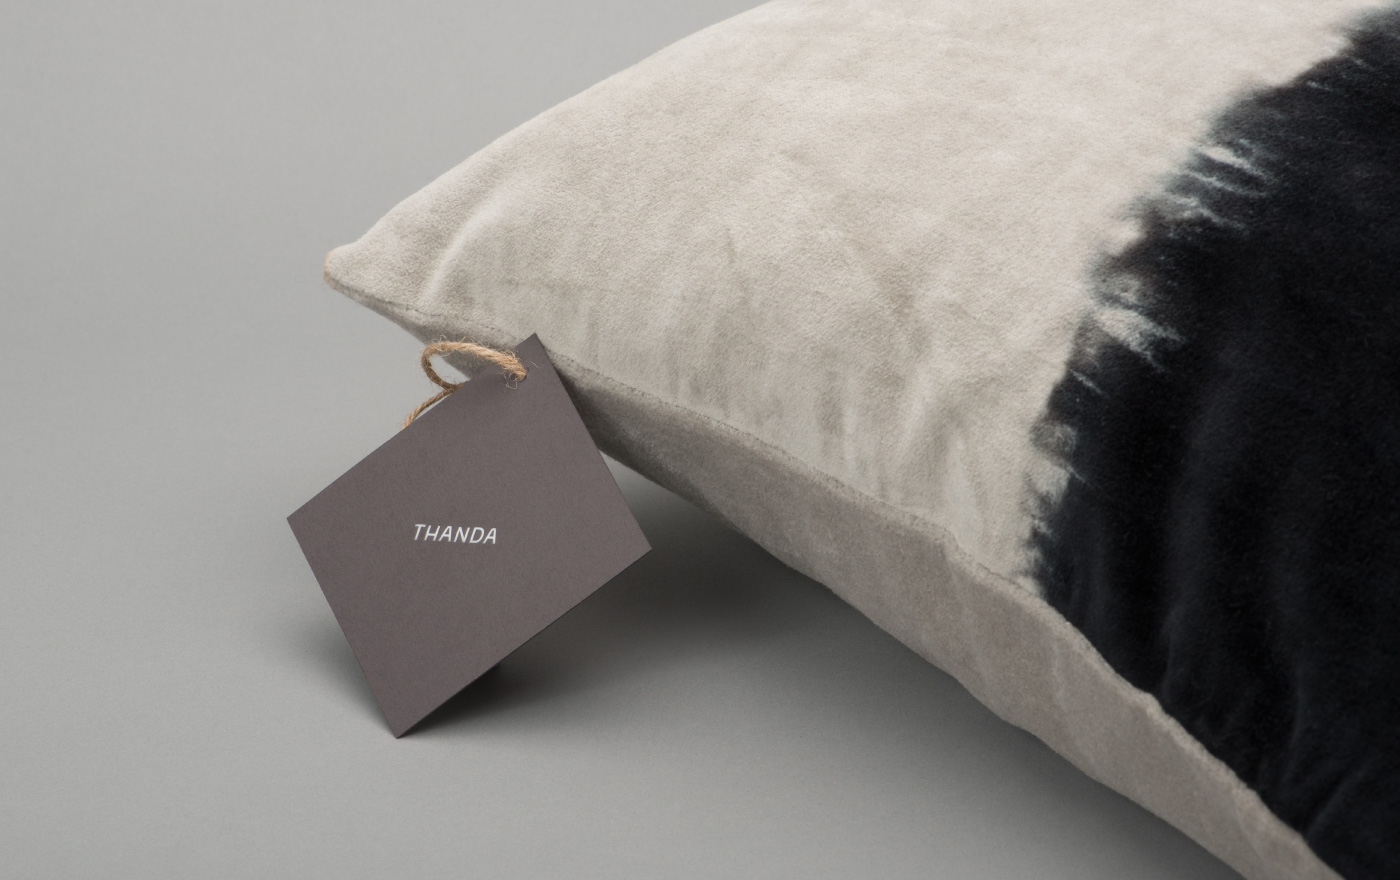 Brand identity and product tags by UK graphic design studio Karoshi for conscientious interior accessory business Thanda